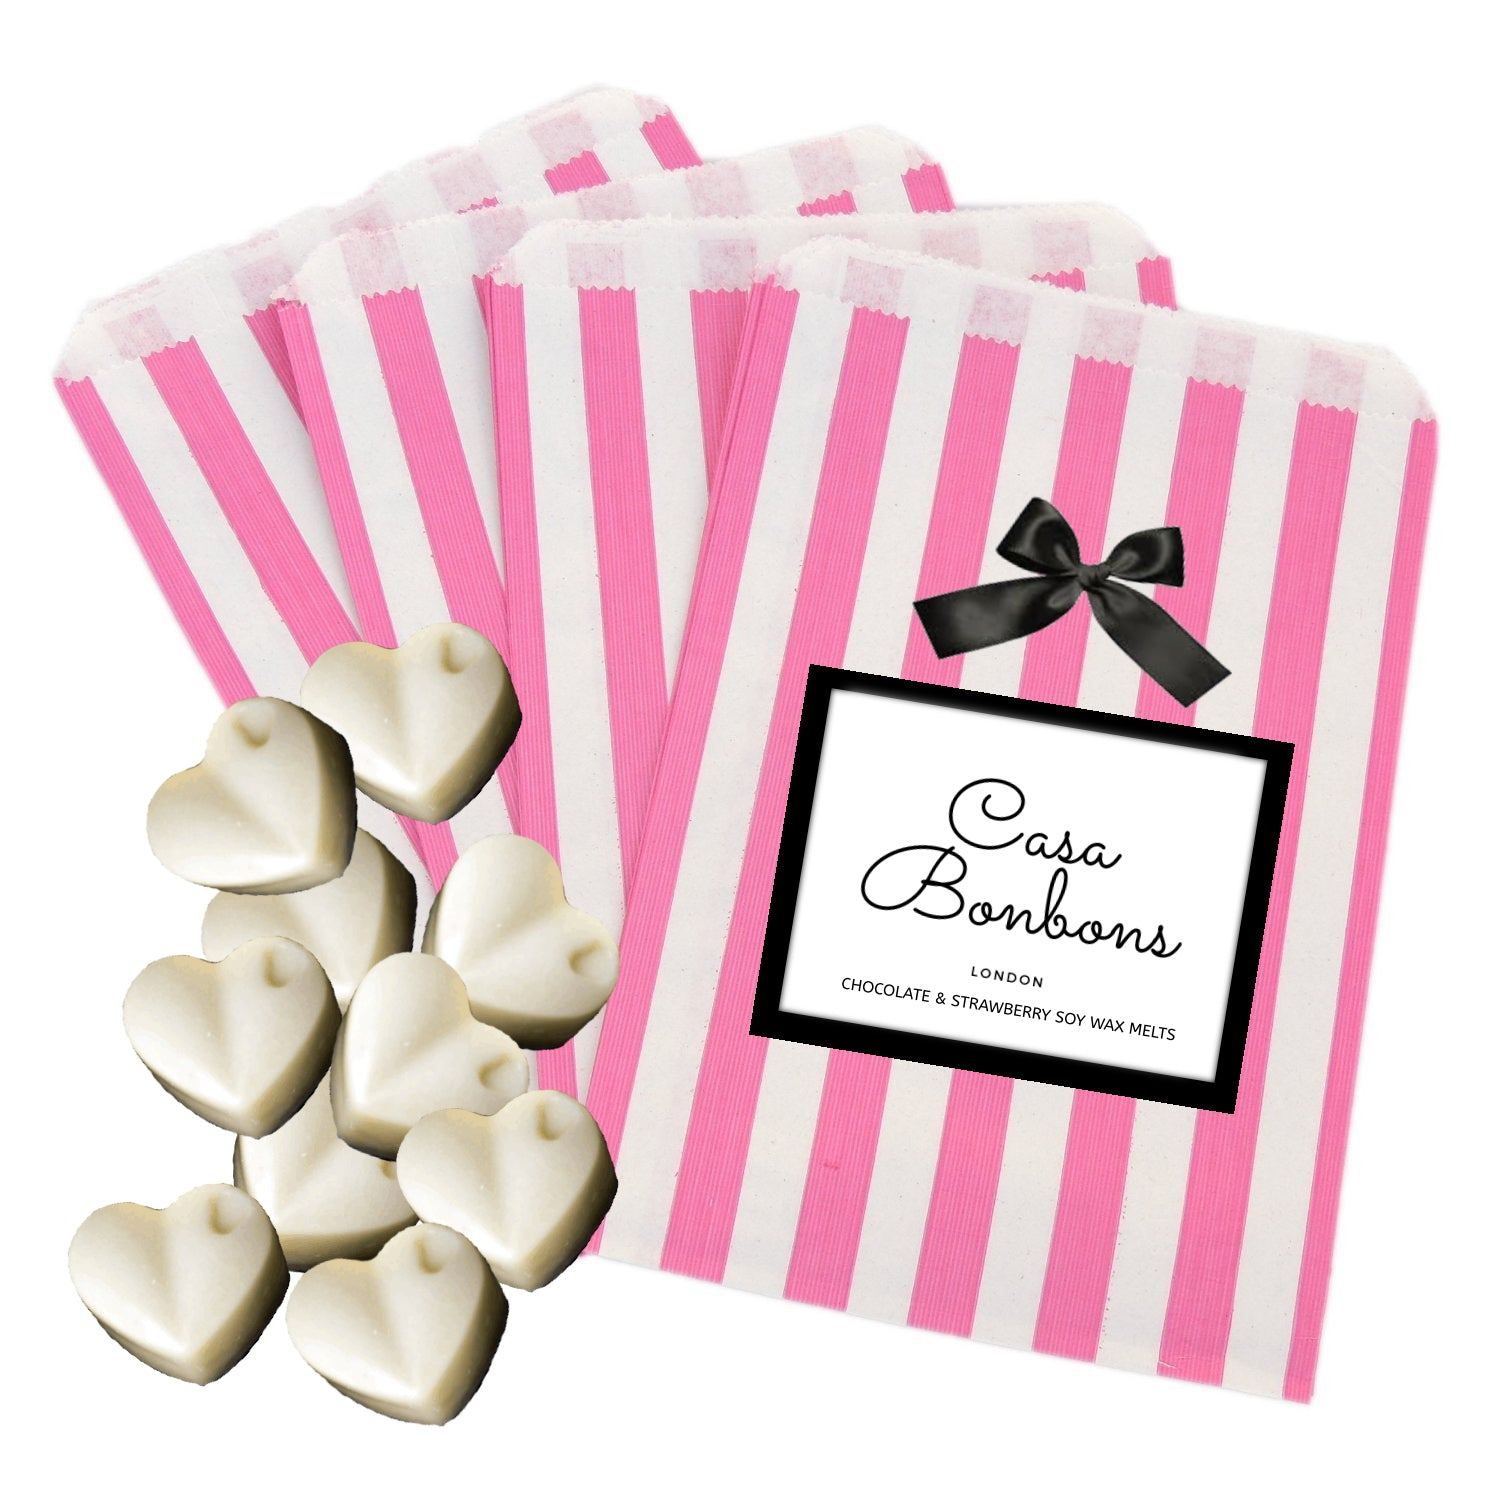 Chocolate & Strawberry gentle scented Soy Wax Melts (10 hearts), PRE-ORDER delivery around 15th of December - natoorio